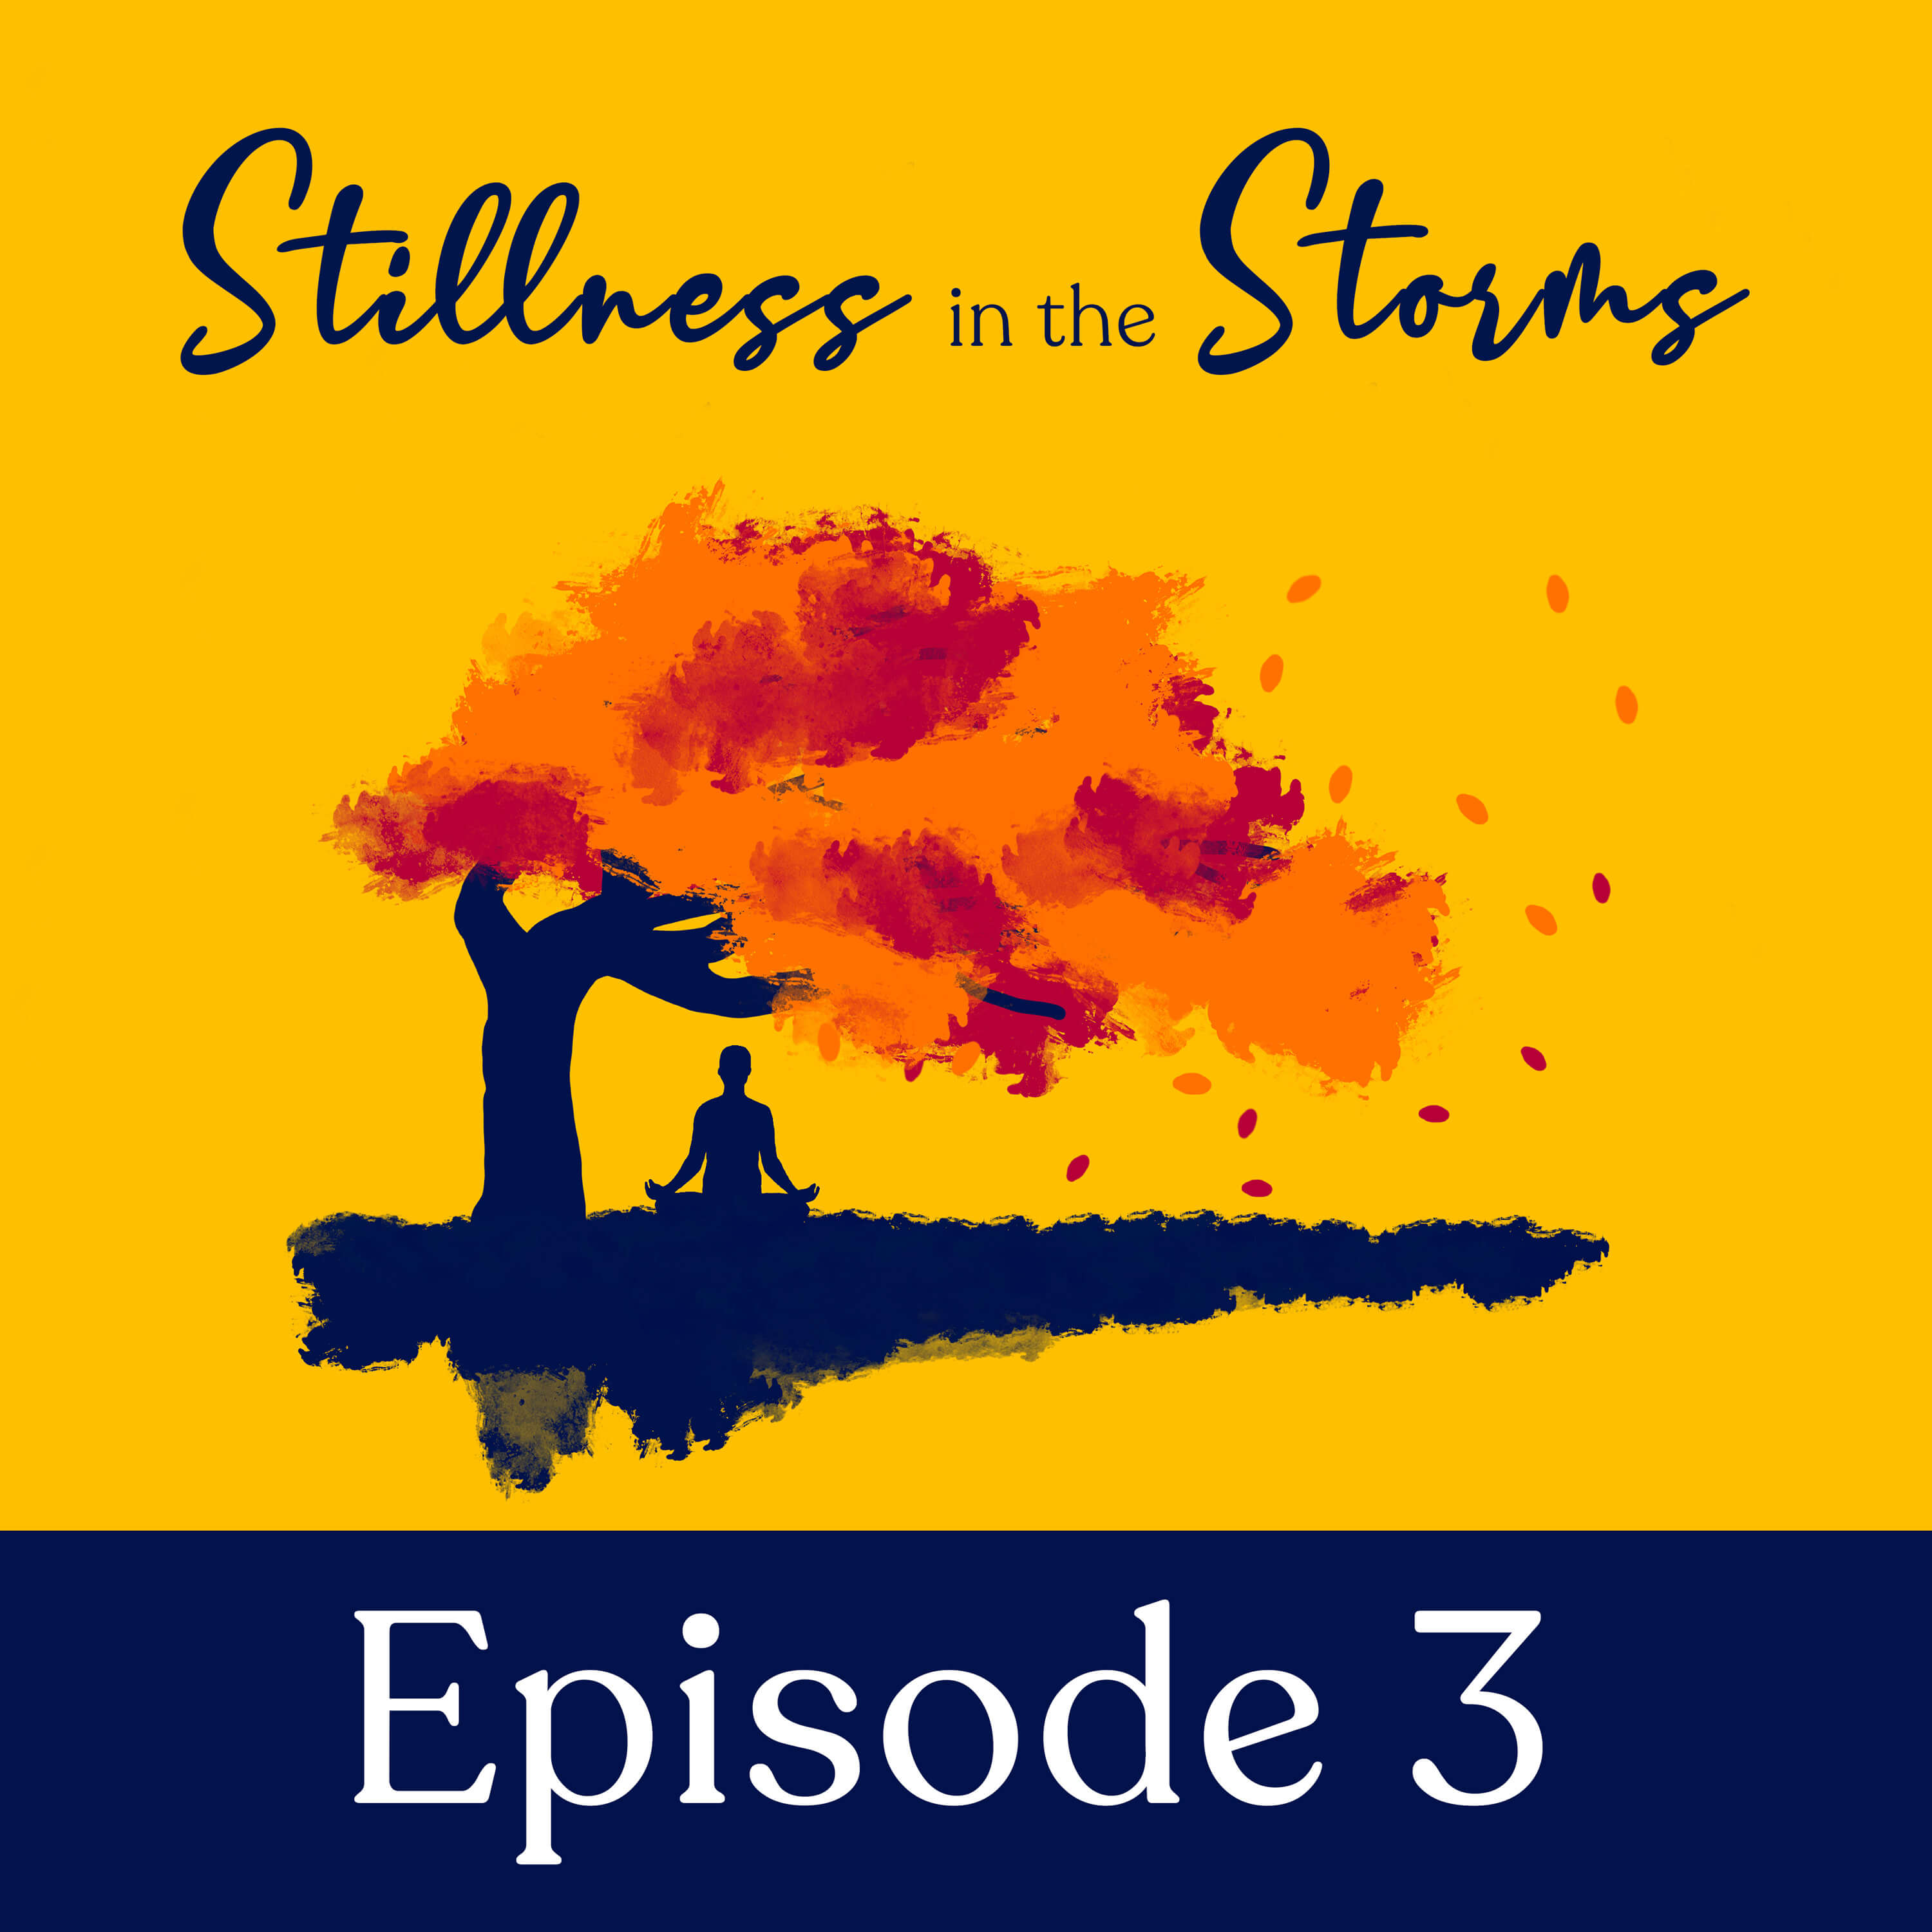 Artwork for podcast Stillness in the Storms